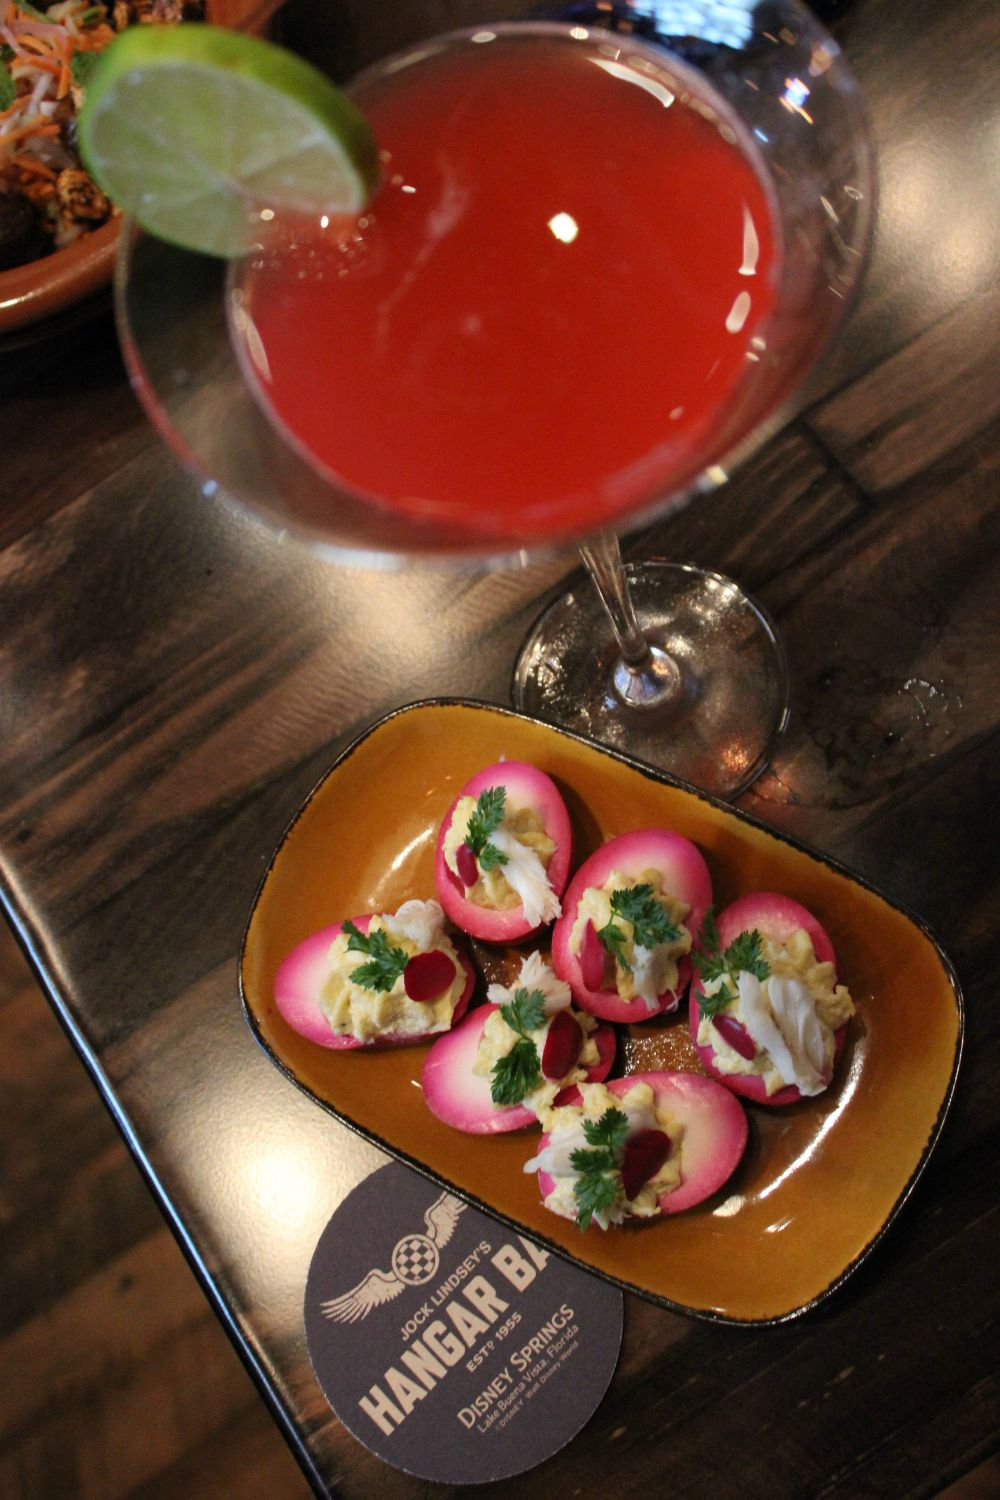 Jock Lindsey's Hangar Bar - Anything goes and She-Deviled Eggs